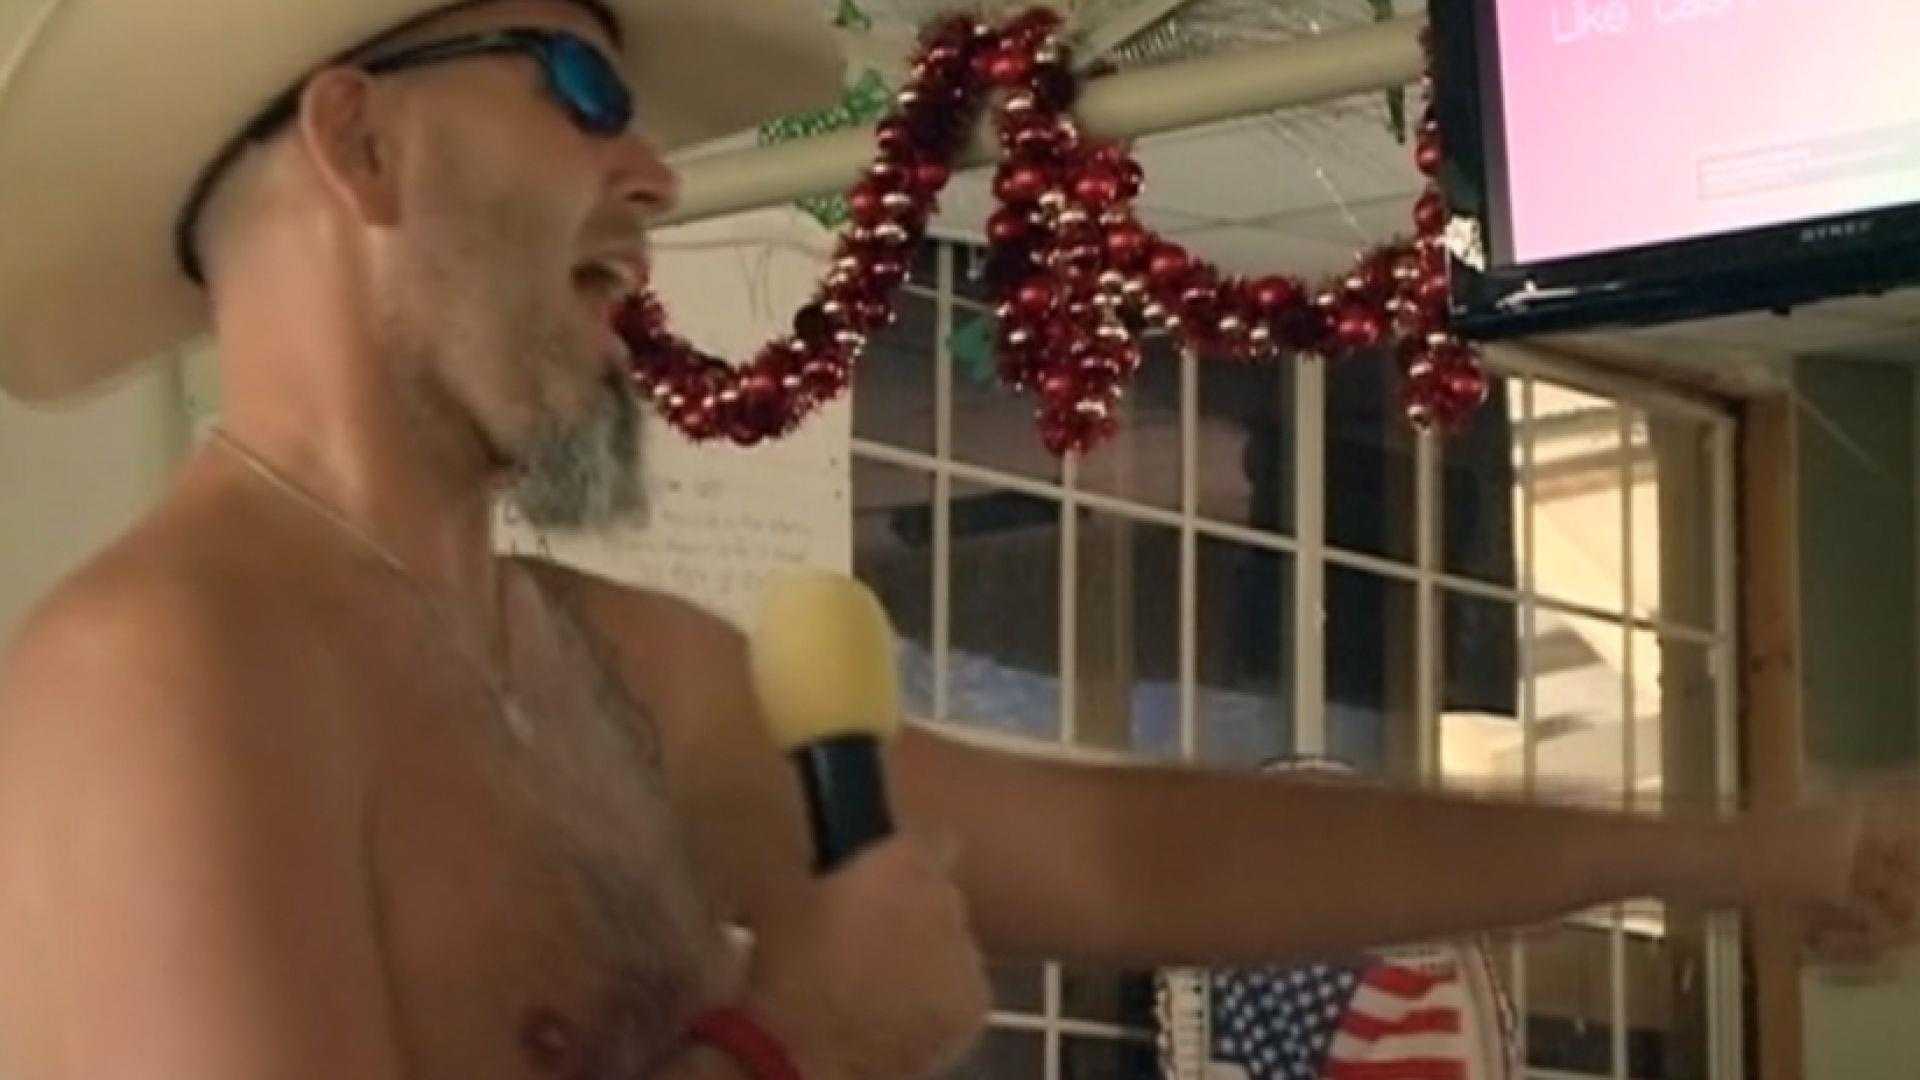 Nudist Camp Beats the Heat and Misconceptions, Barely